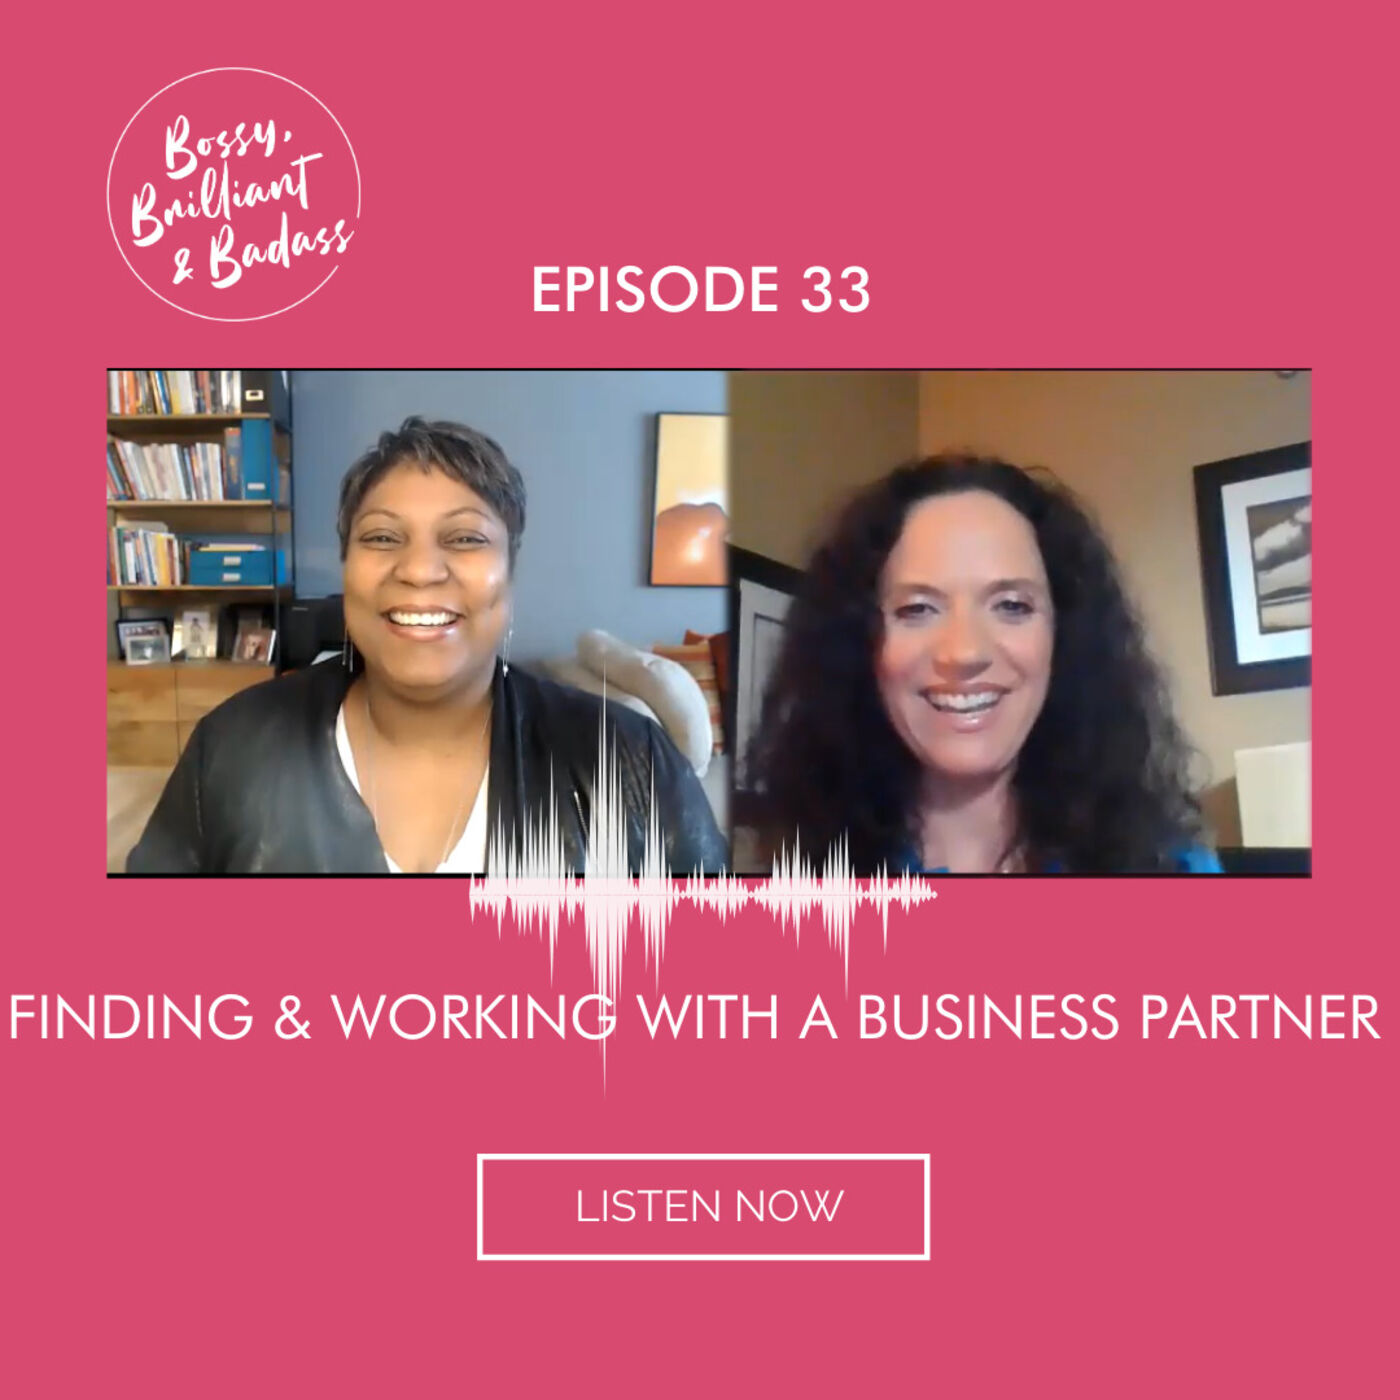 How to Find and Manage the Relationship with Your Business Partner